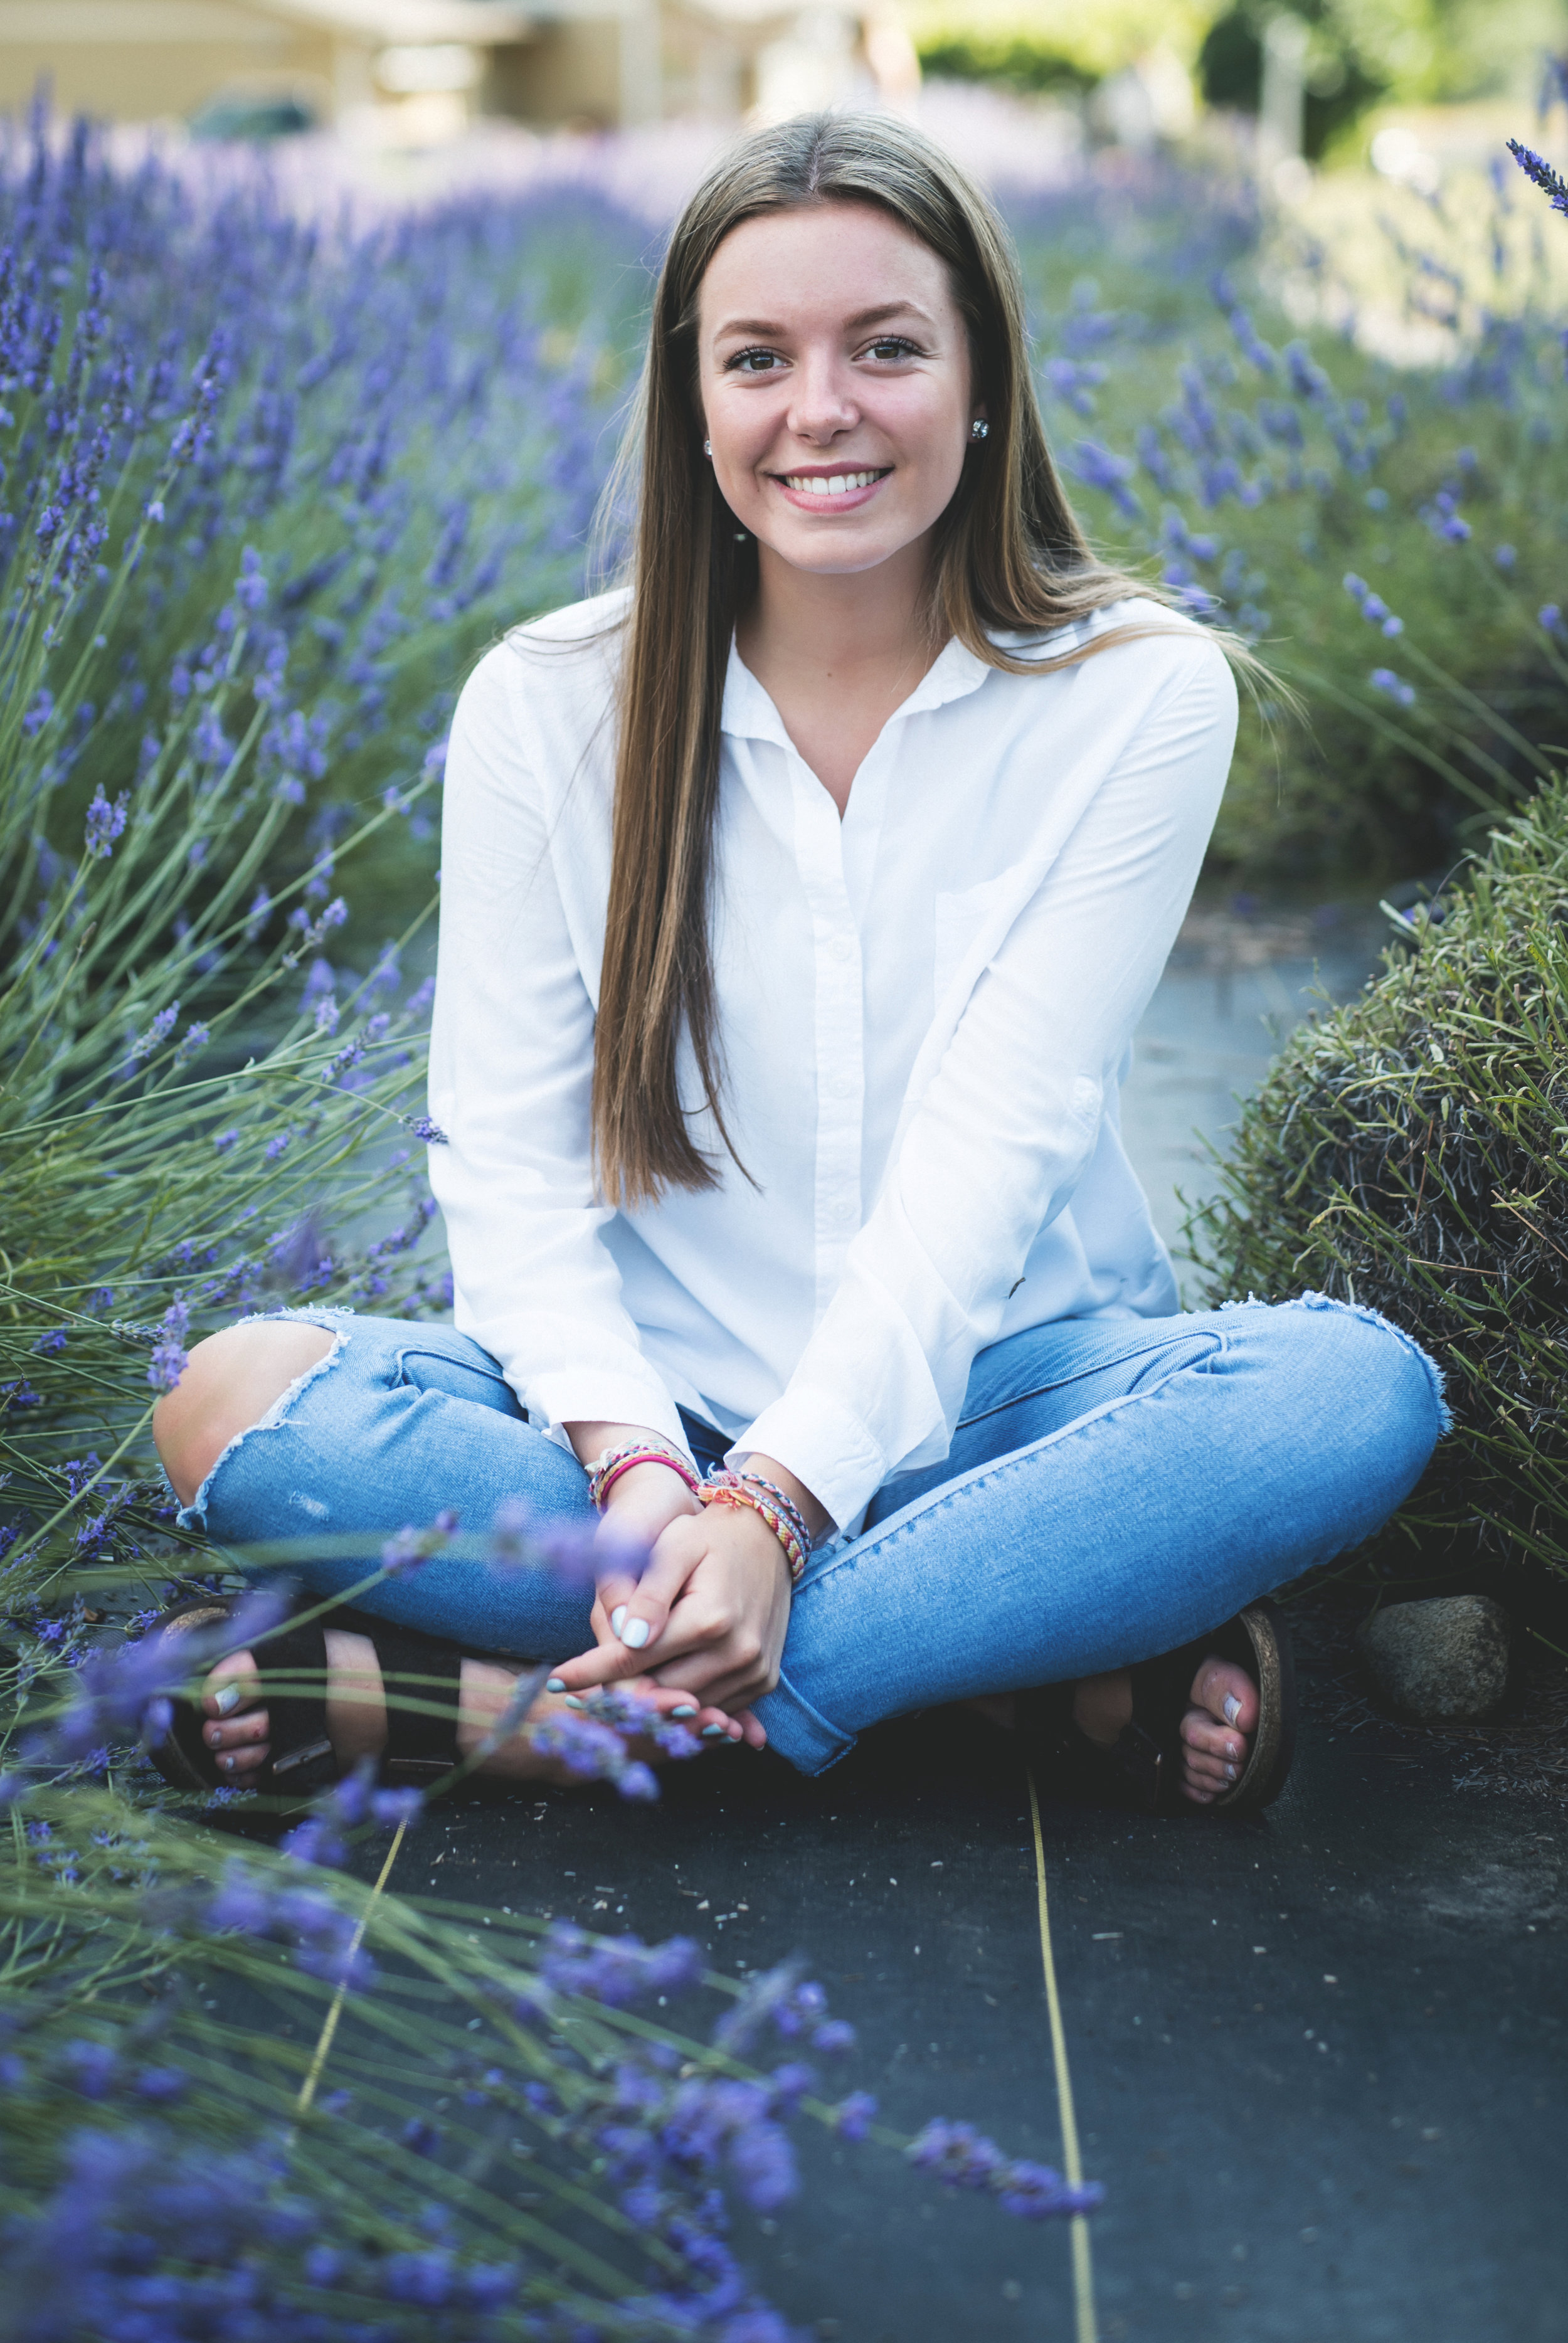 Kristin Grover Images. Lavender fields. Senior photos. Sarah senior model sitting